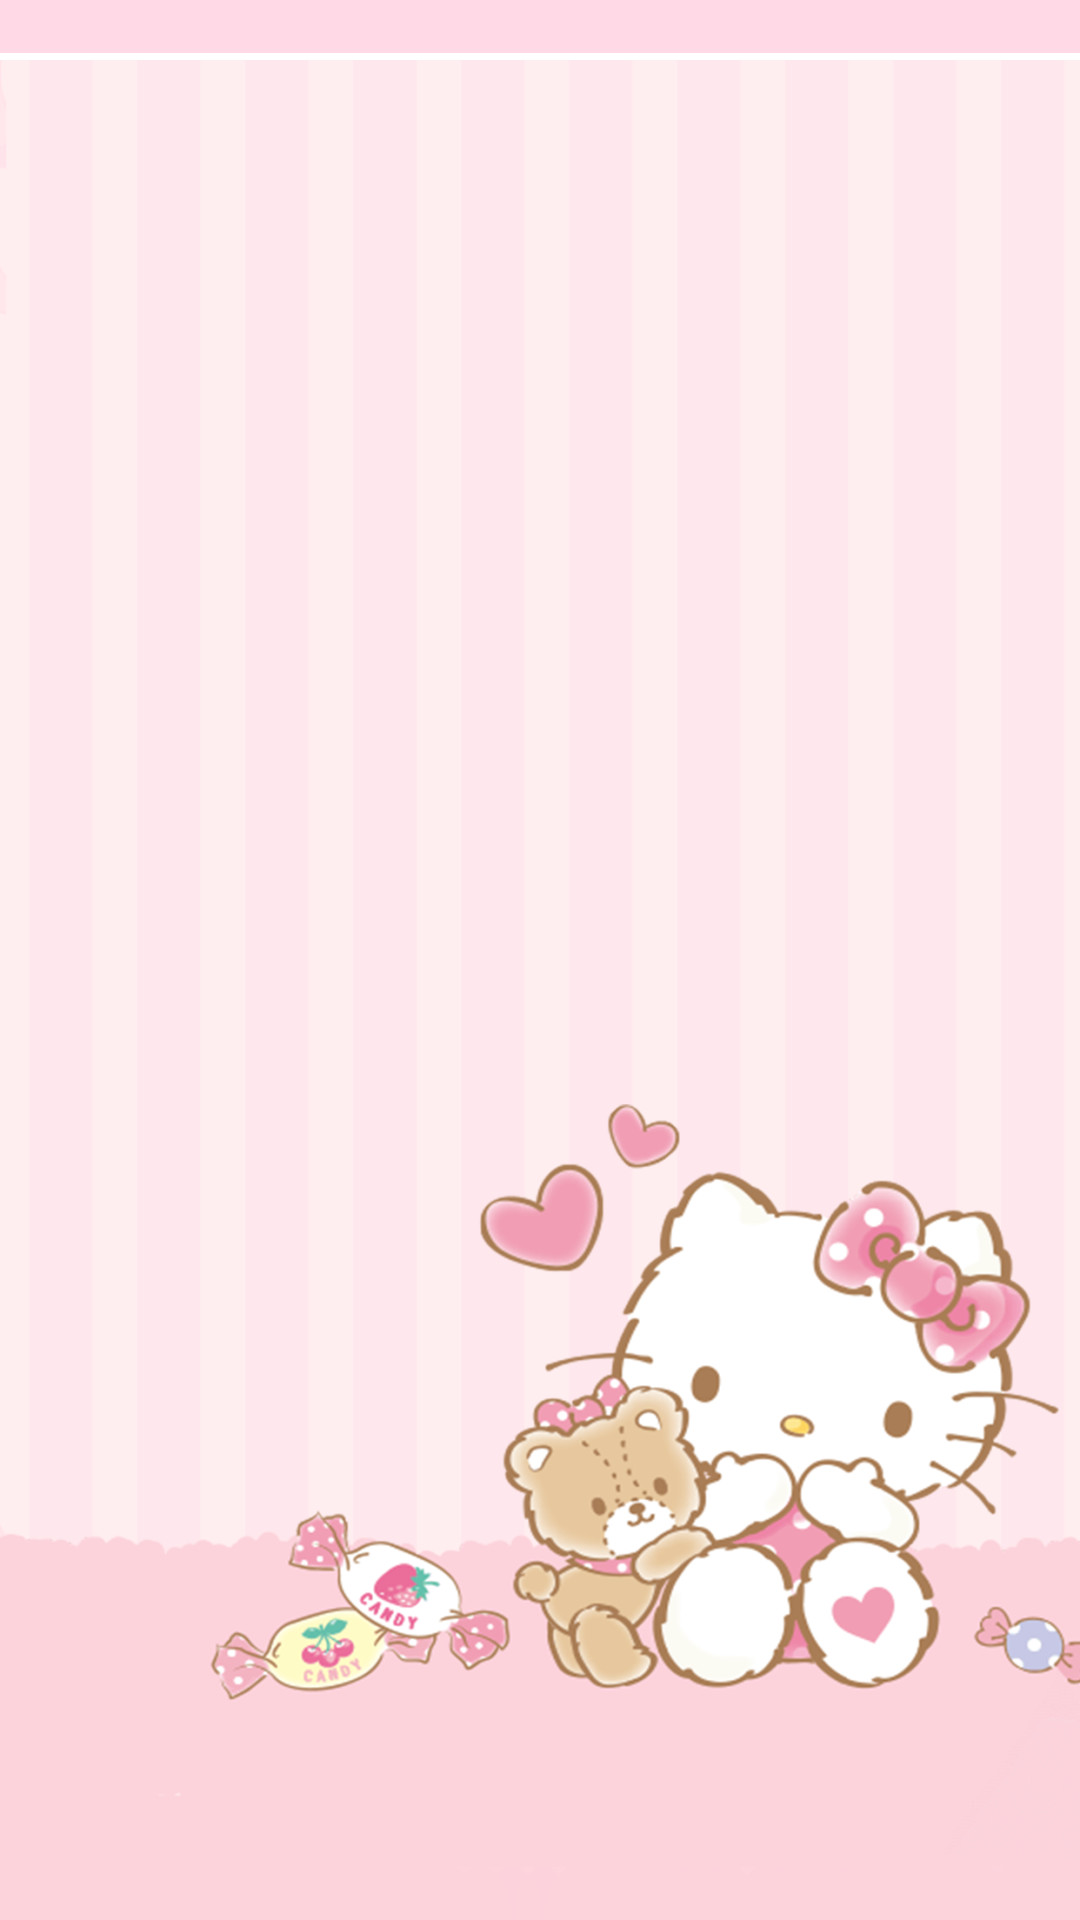 Car Wallpaper Free Download For Android Baby Hello Kitty Wallpaper 40 Images